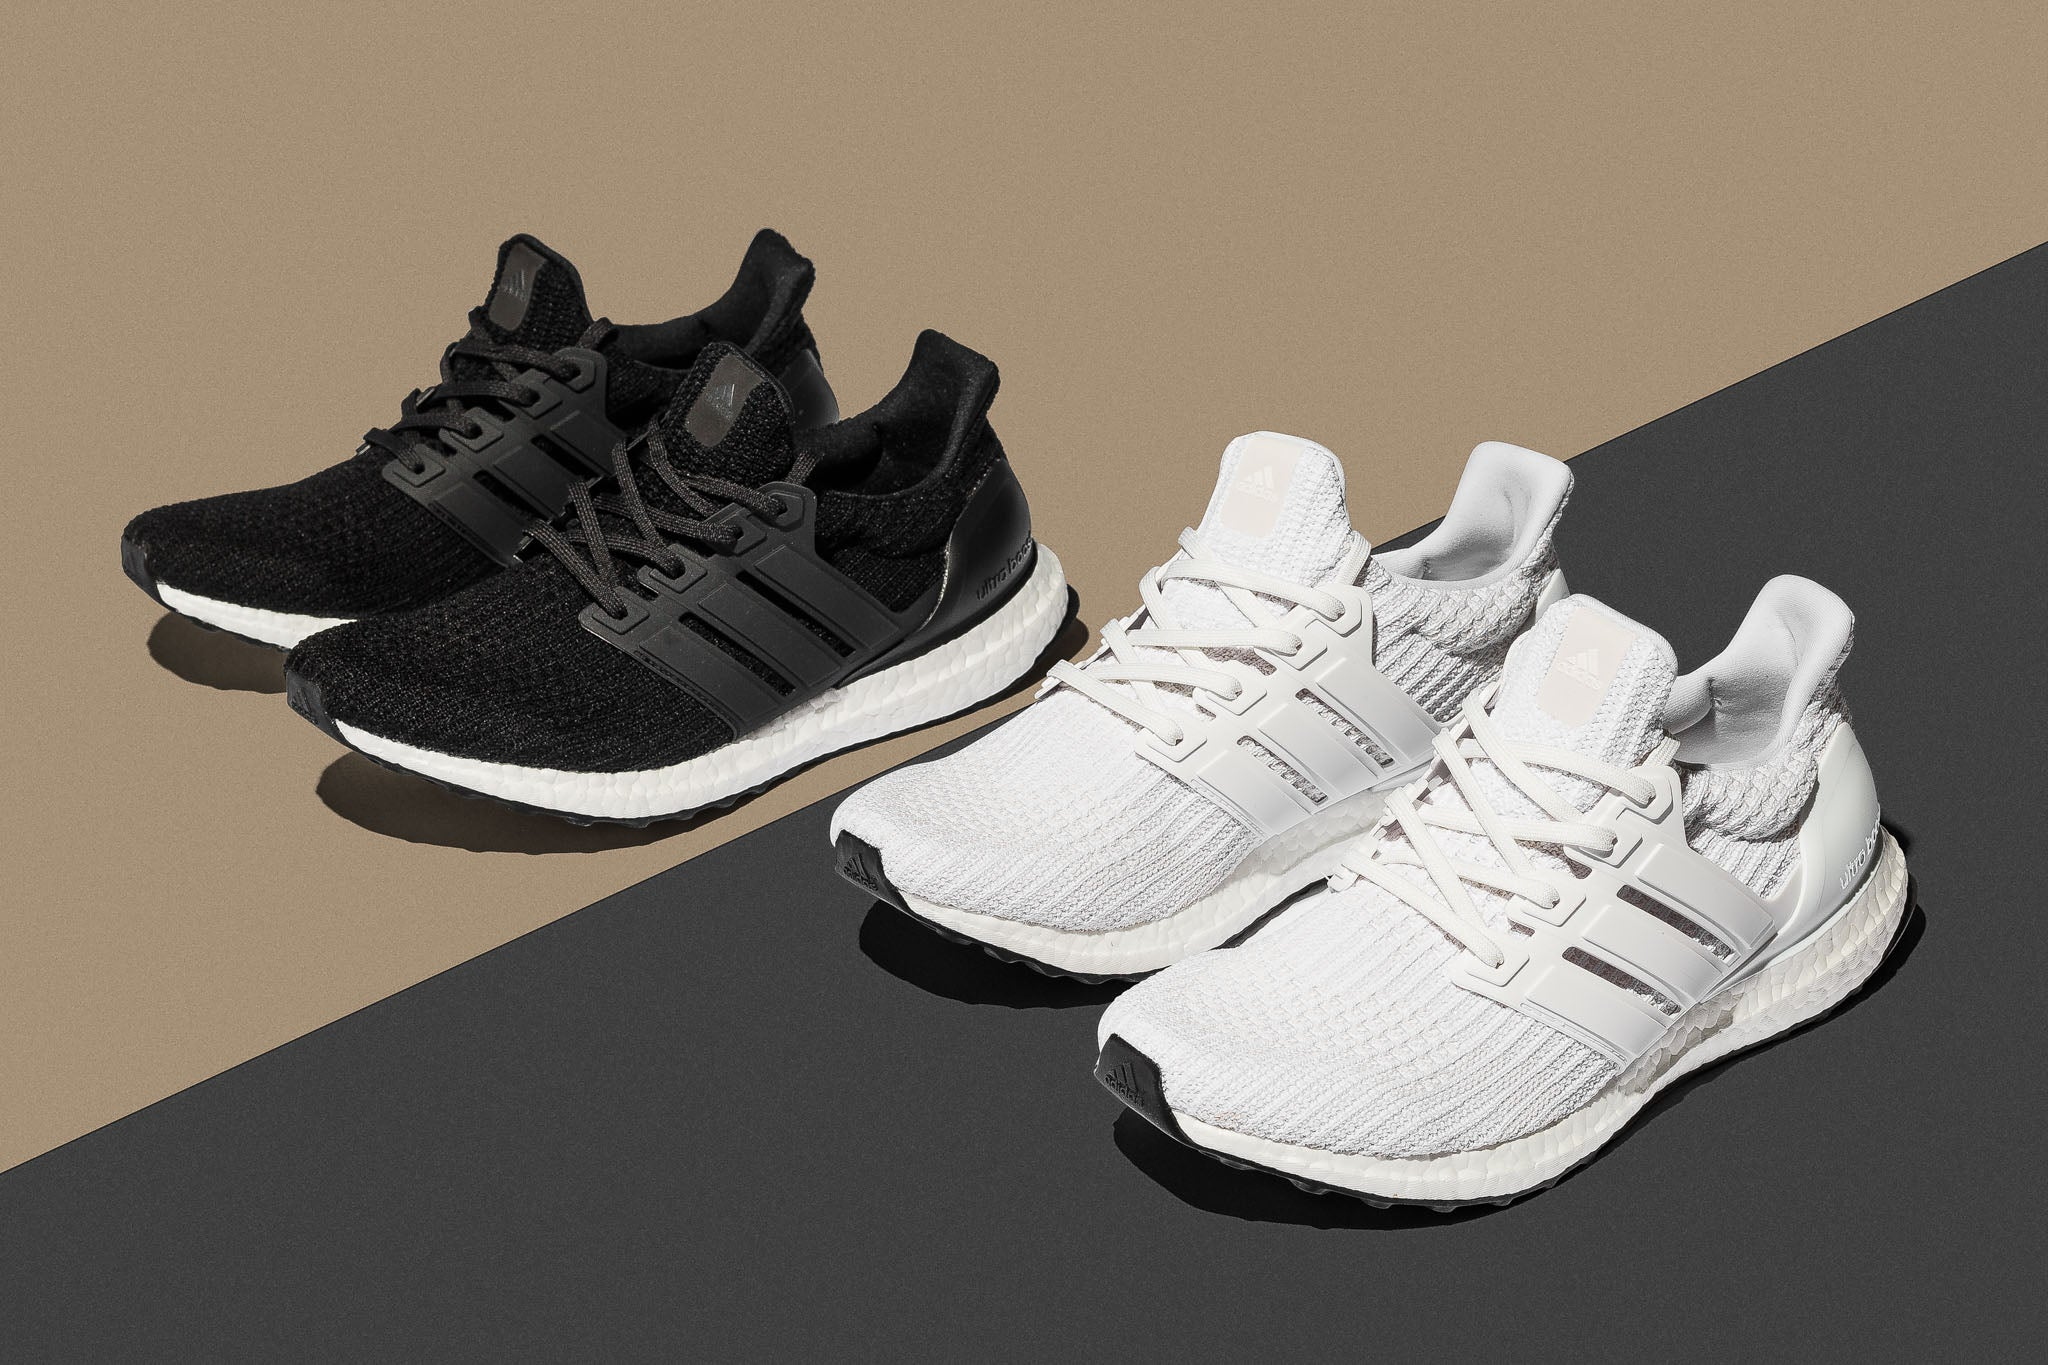 adidas Ultraboost Collection 06.01.18